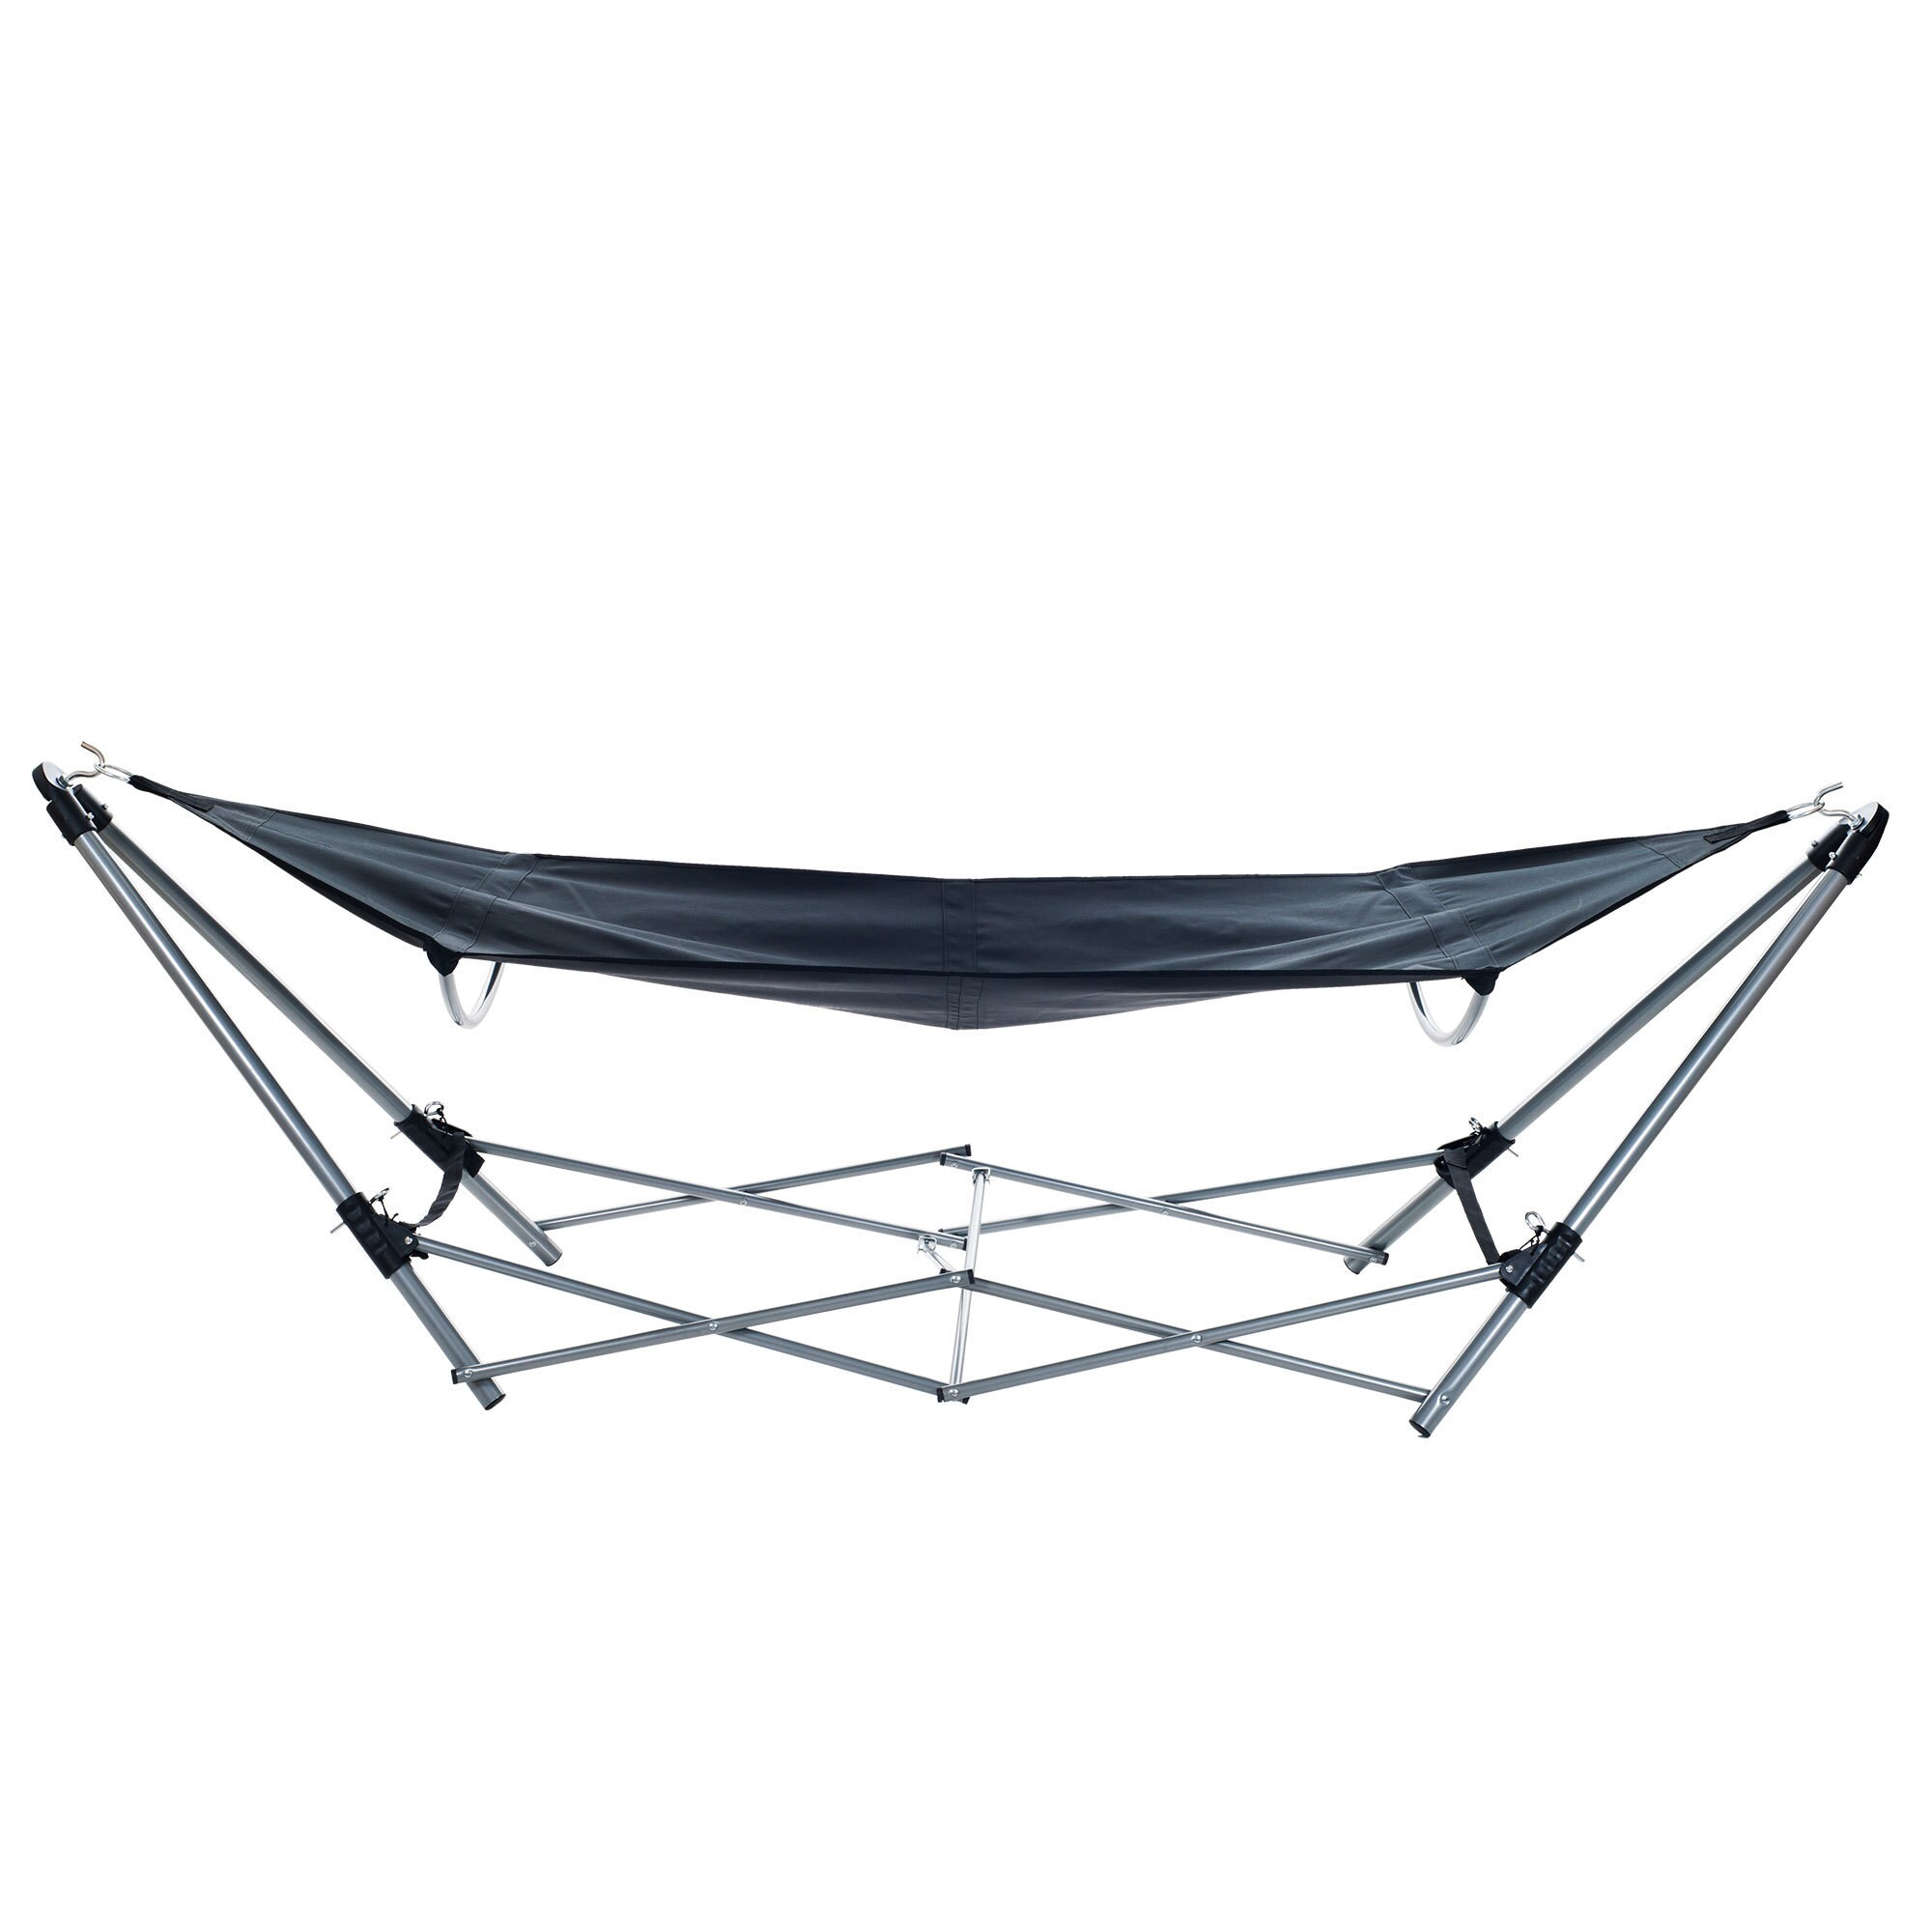 stalwart portable hammock with aluminum frame and carrying bag   free shipping today   overstock     16374436 stalwart portable hammock with aluminum frame and carrying bag      rh   overstock